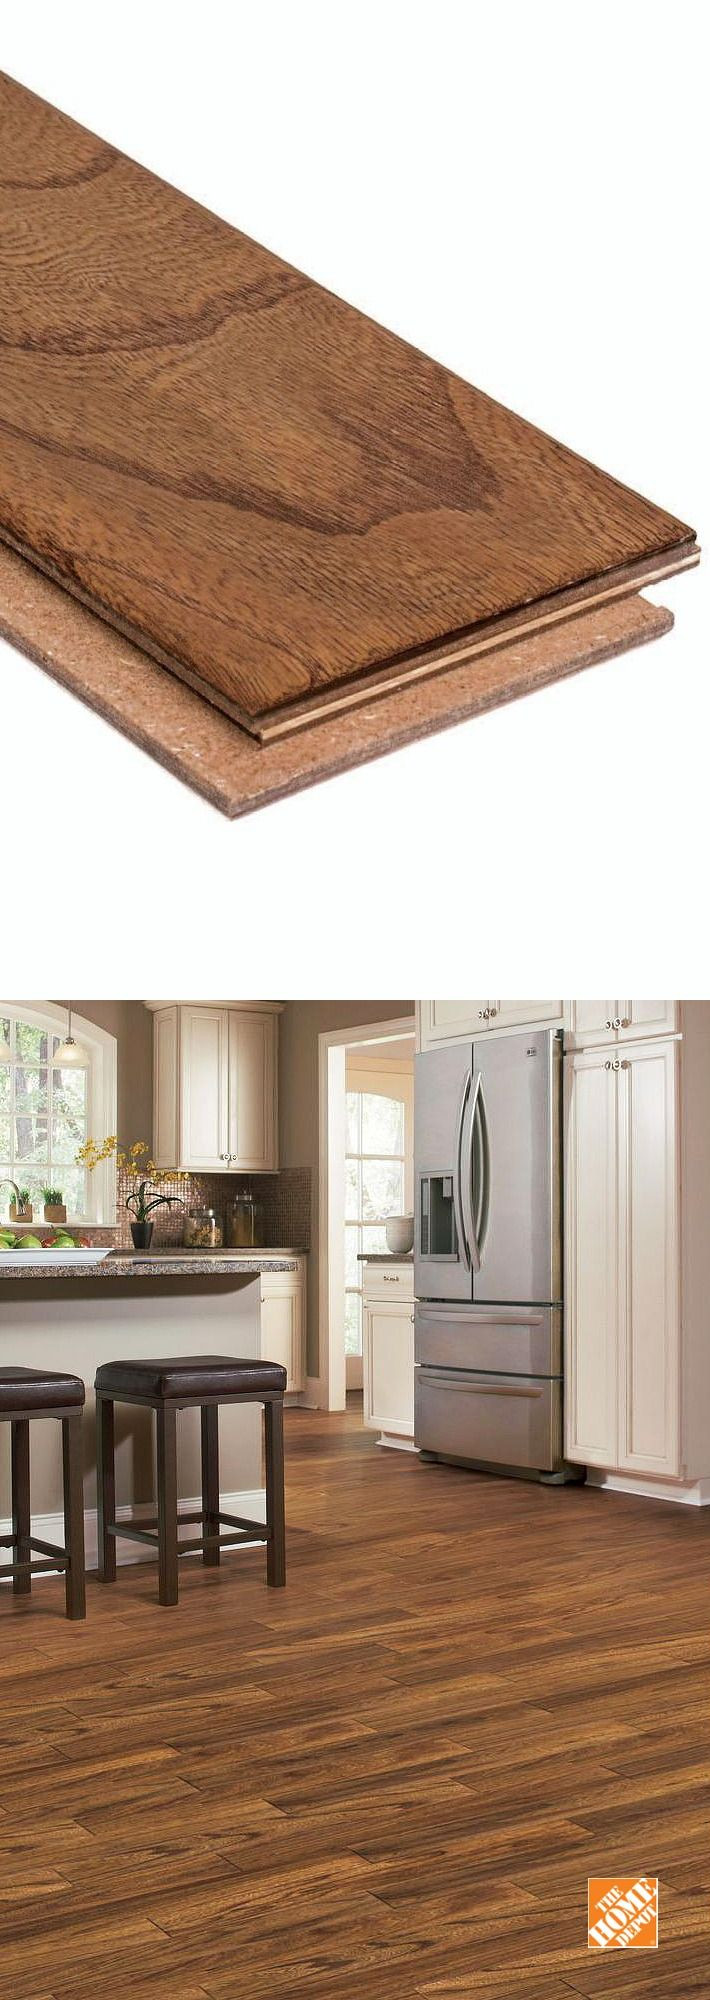 elm desert hardwood flooring of 9 best granbury remodel images on pinterest cuisine design my with beautifully enhance the look of your residence with this durable home legend hand scraped elm desert click lock hardwood flooring